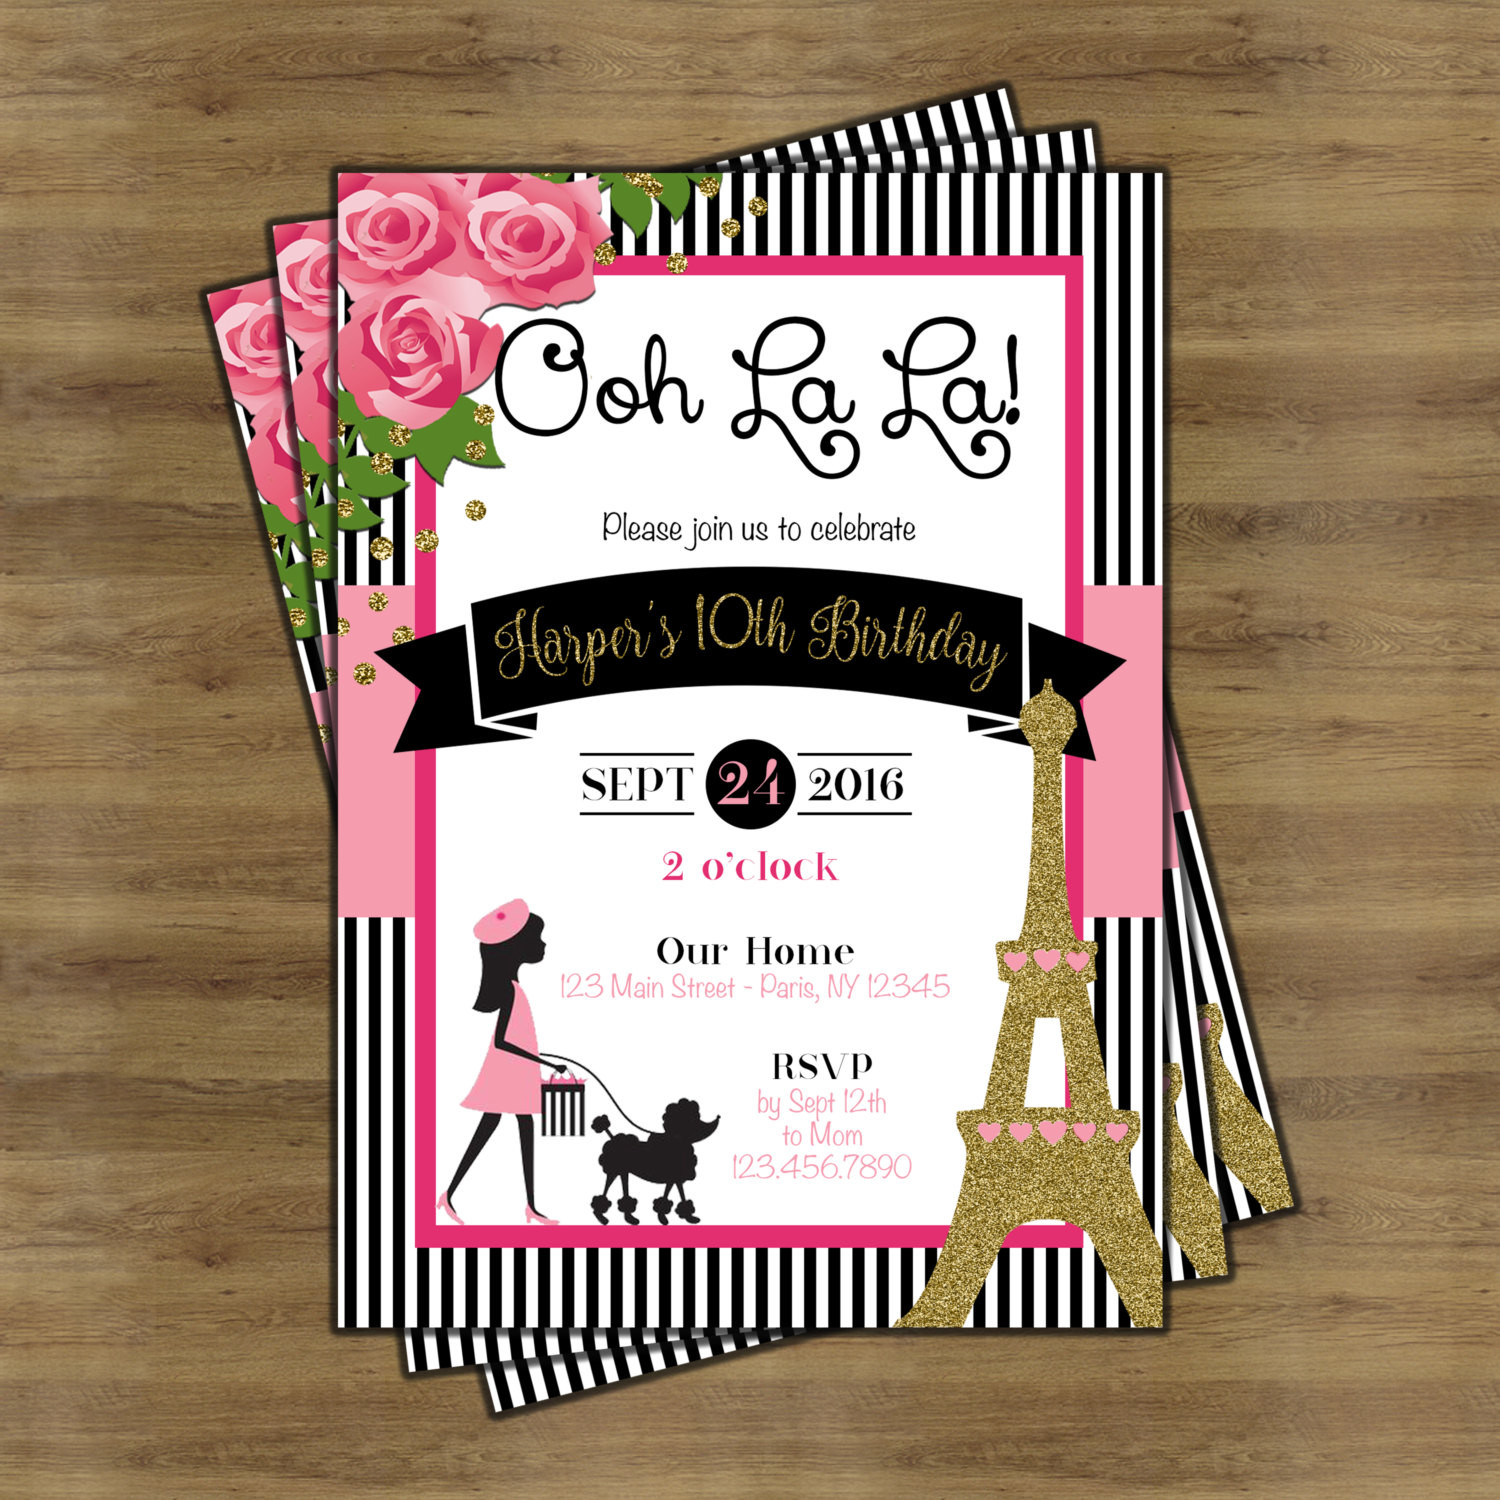 Best ideas about Paris Themed Birthday Invitations . Save or Pin Paris Invitation Paris Theme Party Paris Themed Invitations Now.